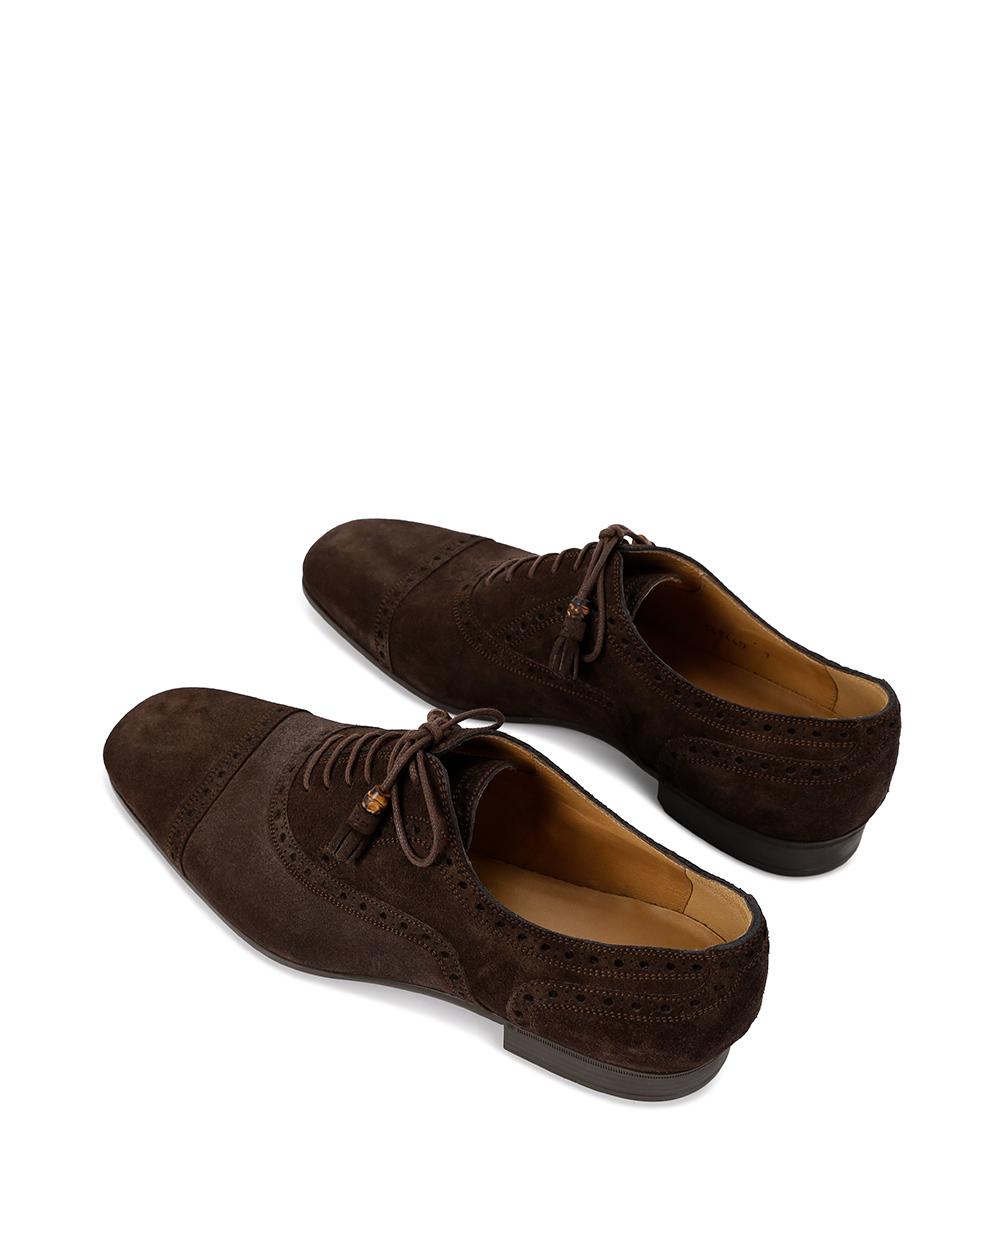 Suede Shoes 2